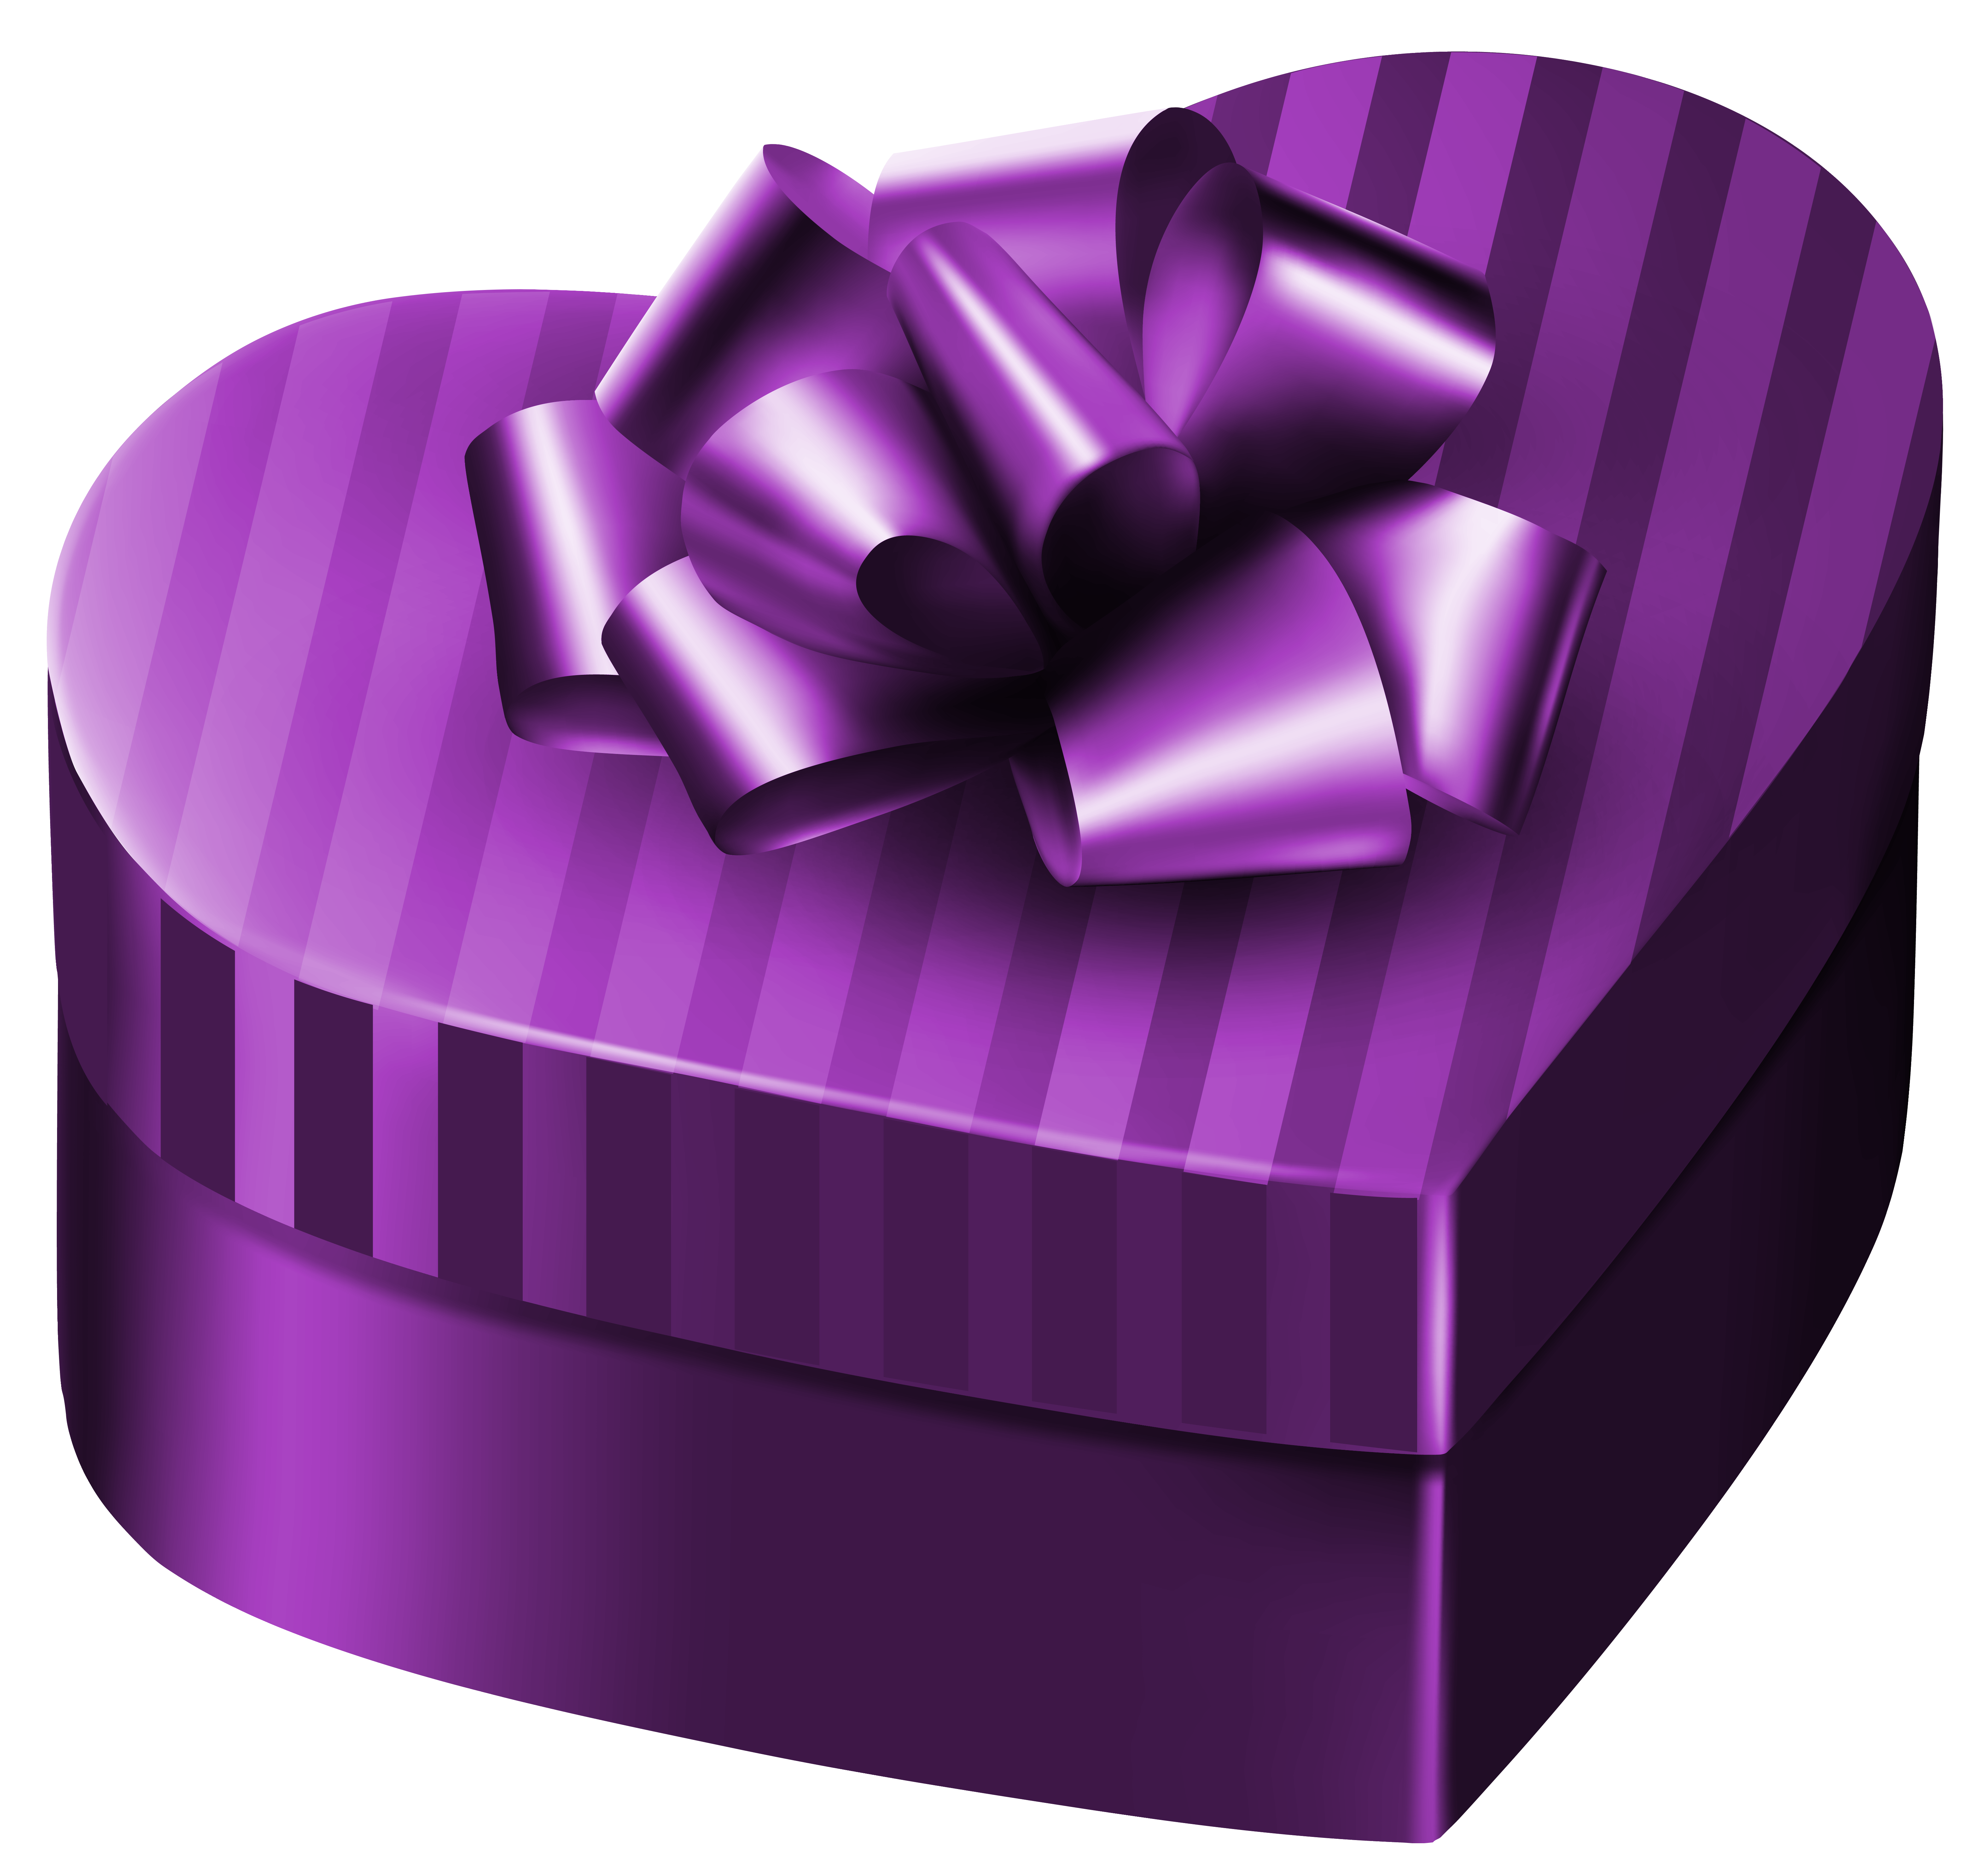 Lavender heart clipart graphic royalty free Purple Luxury Gift Box Heart PNG Clipart Image | Gallery ... graphic royalty free